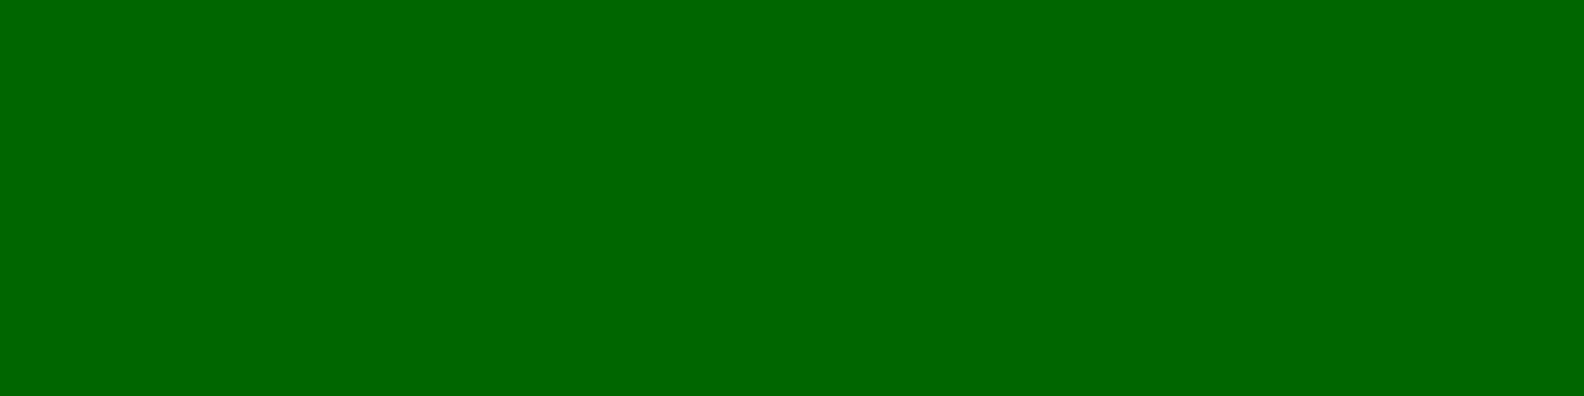 1584x396 Pakistan Green Solid Color Background